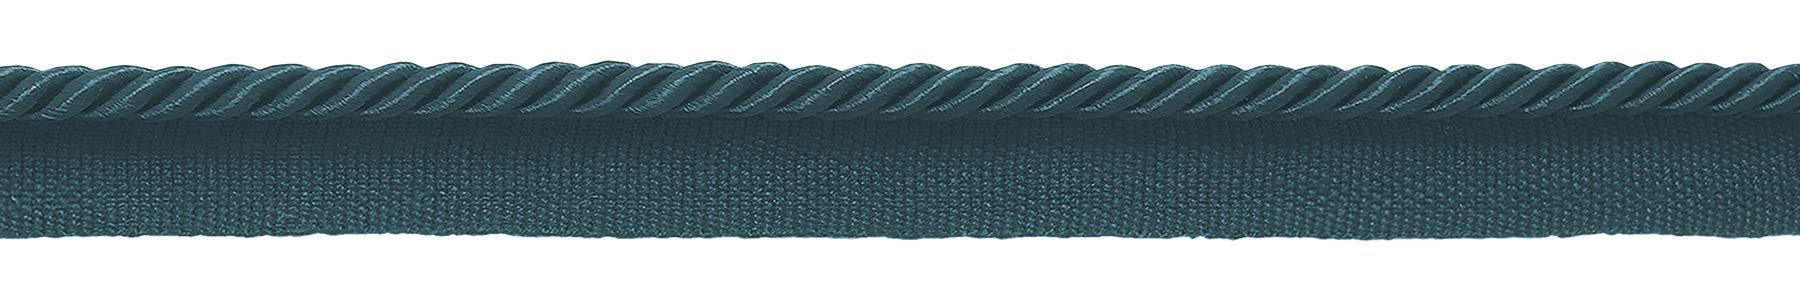 DÉCOPRO 24 Yard Package|Small 3/16 inch Teal Blue Basic Trim Decorative Rope|Style# 0316S (21976)|Color: Light Peacock Blue - 9620|72 Ft / 21.9 Meters by DÉCOPRO